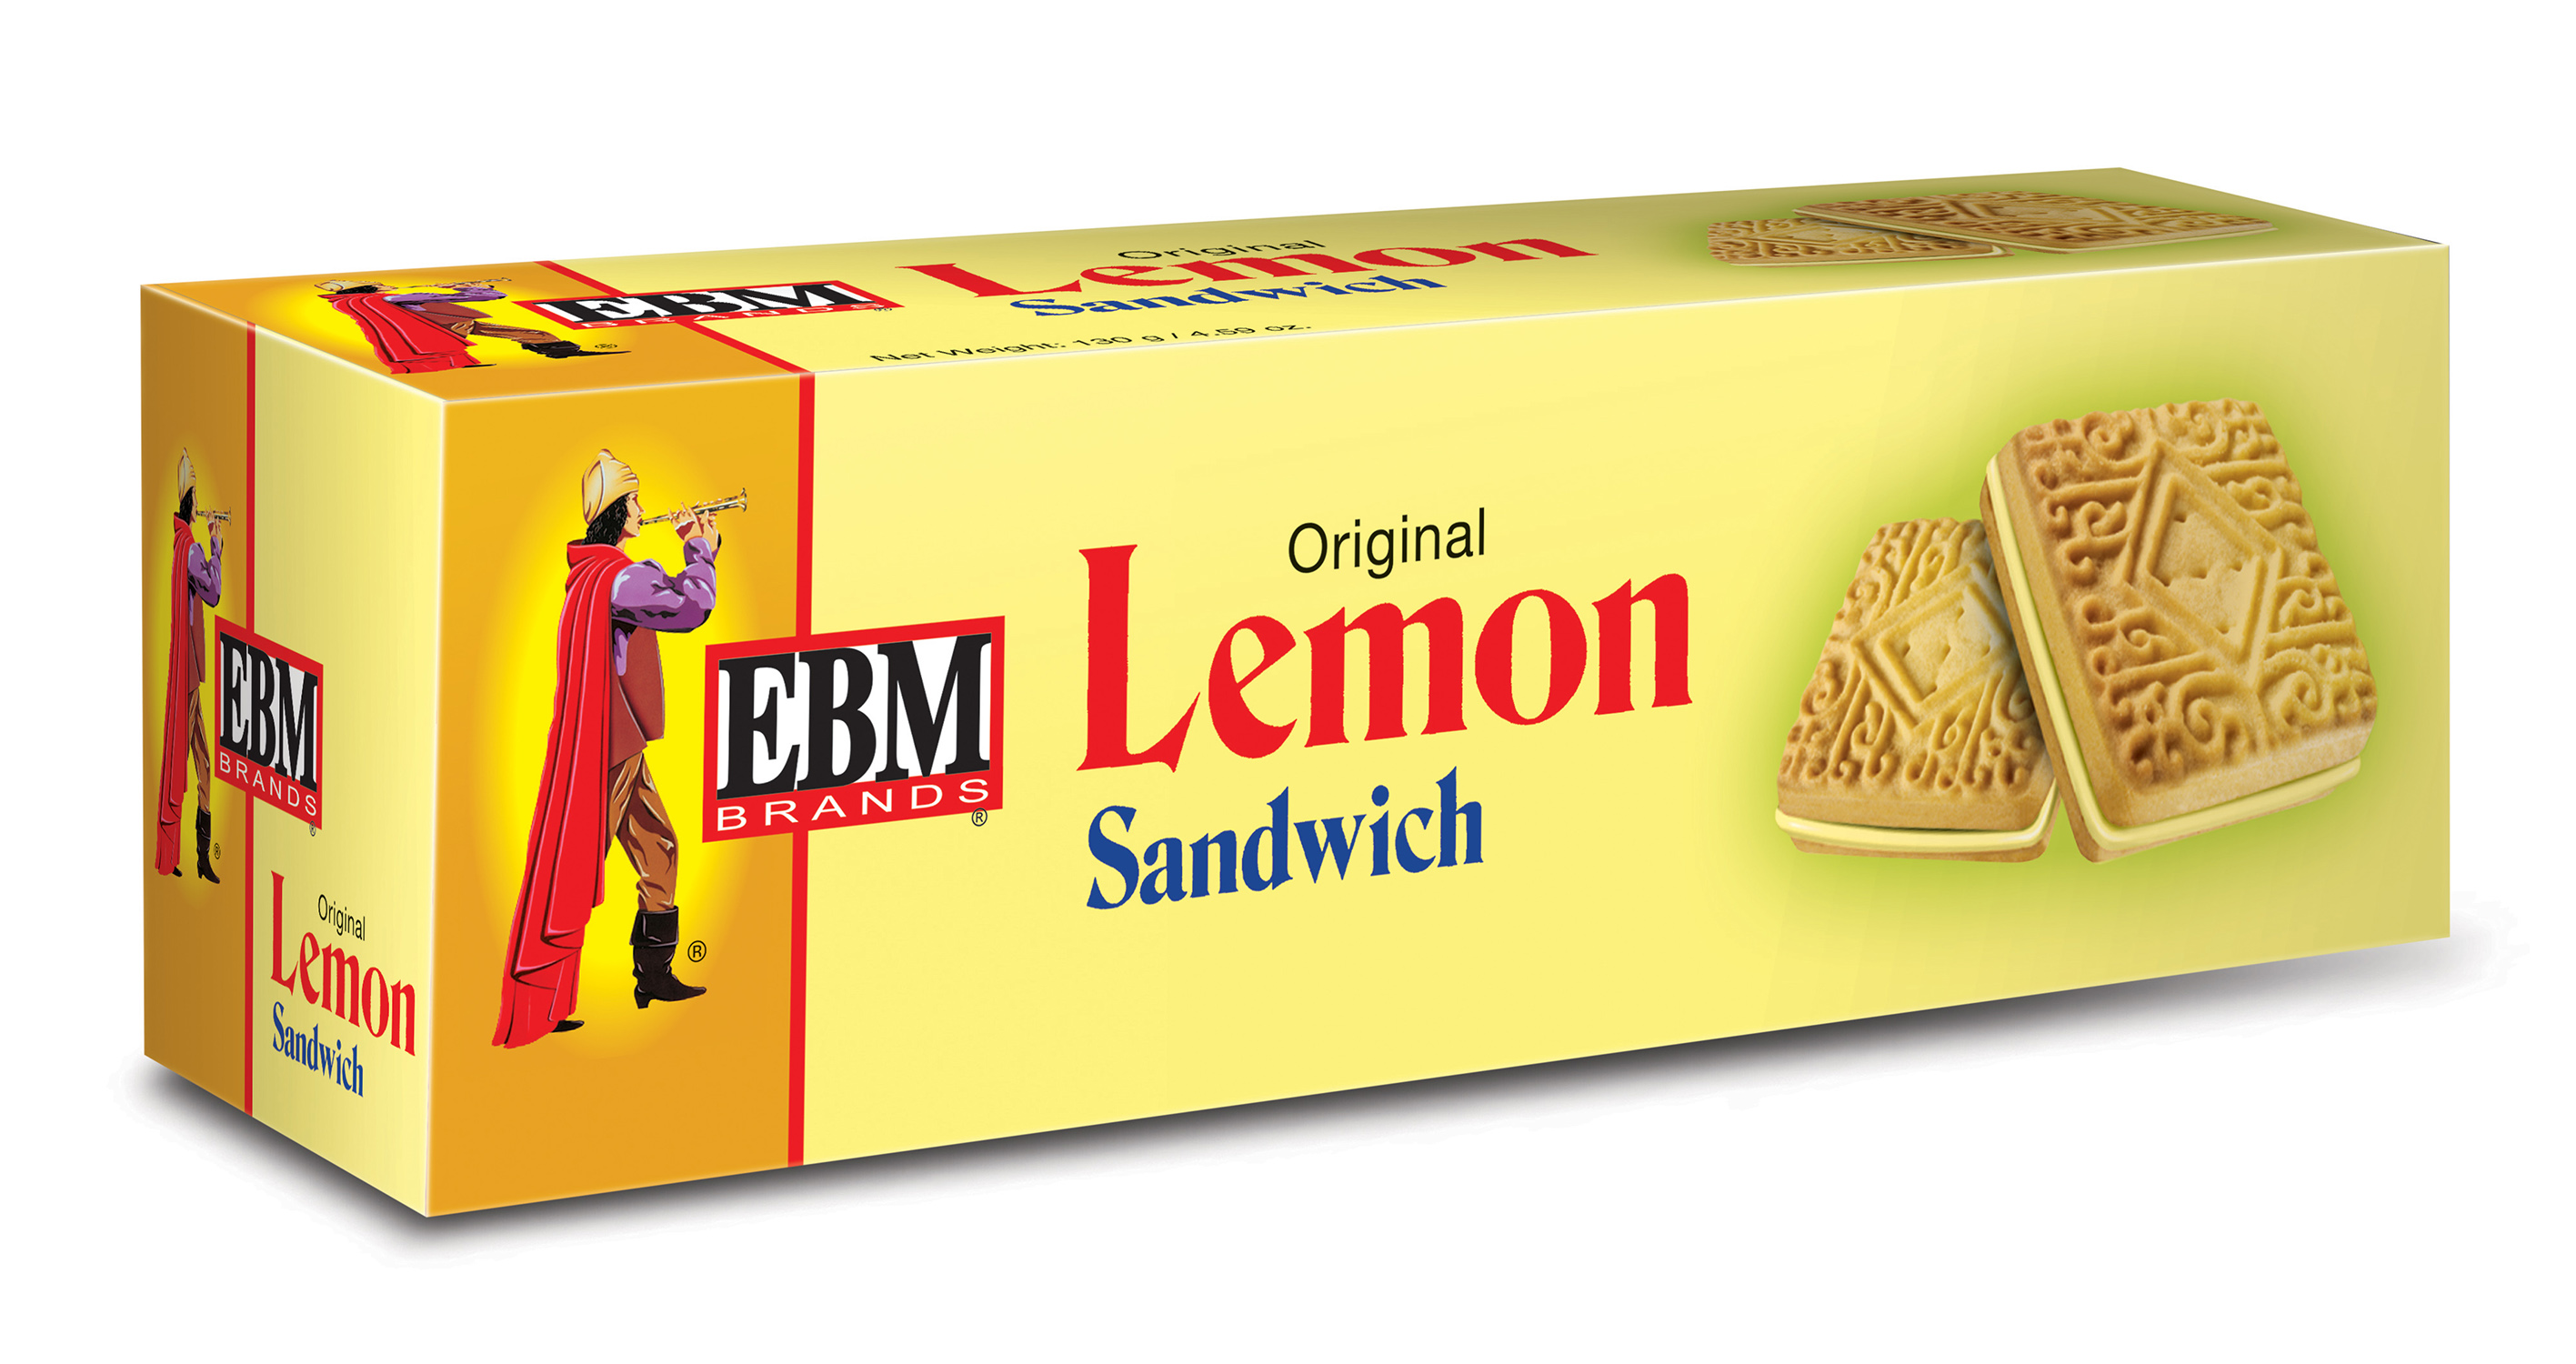 EBM Original Lemon Sandwich